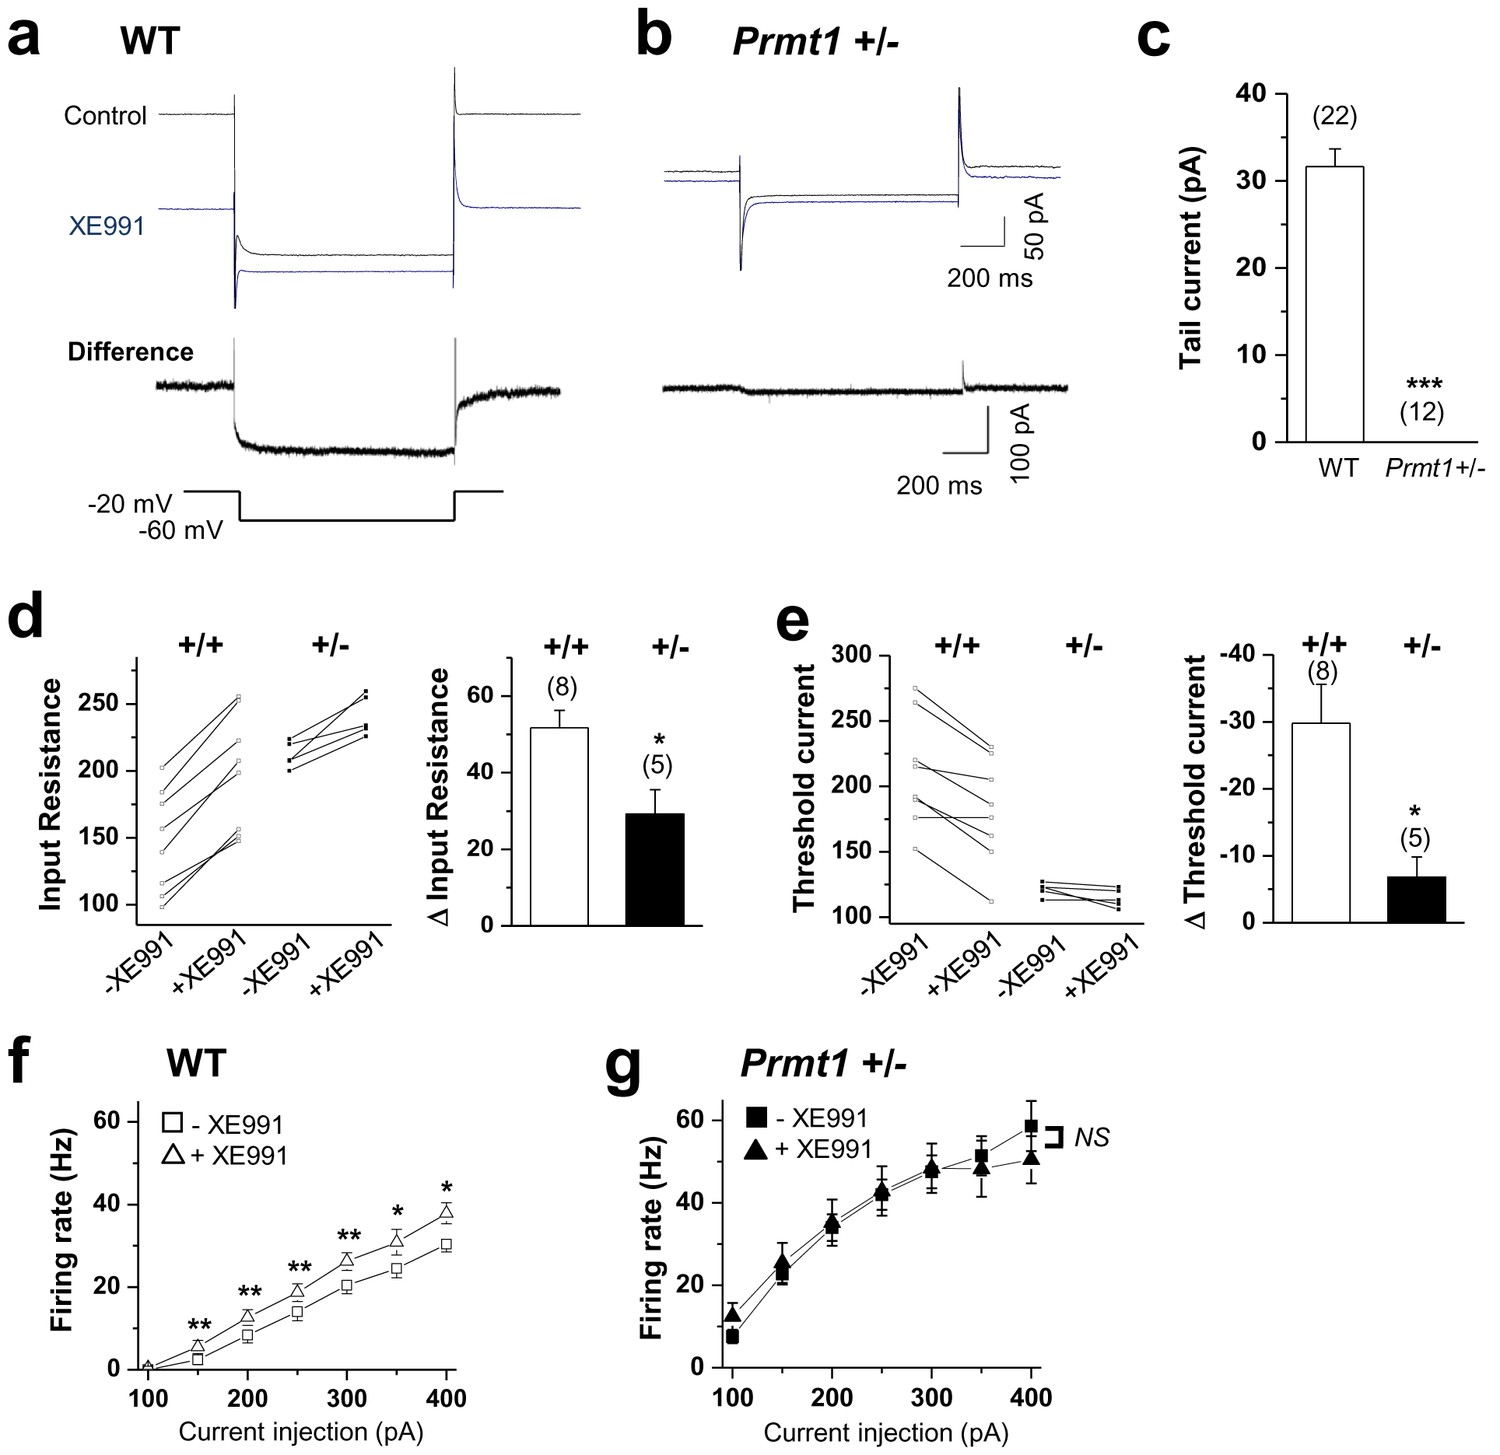 Protein Arginine Methylation Facilitates Kcnq Channel Pip2 Keywords Like Schematic Symbol For Heater Panel Other People Current Deficiency Contributed To The Persistent Hyperexcitability In Prmt1 Mice